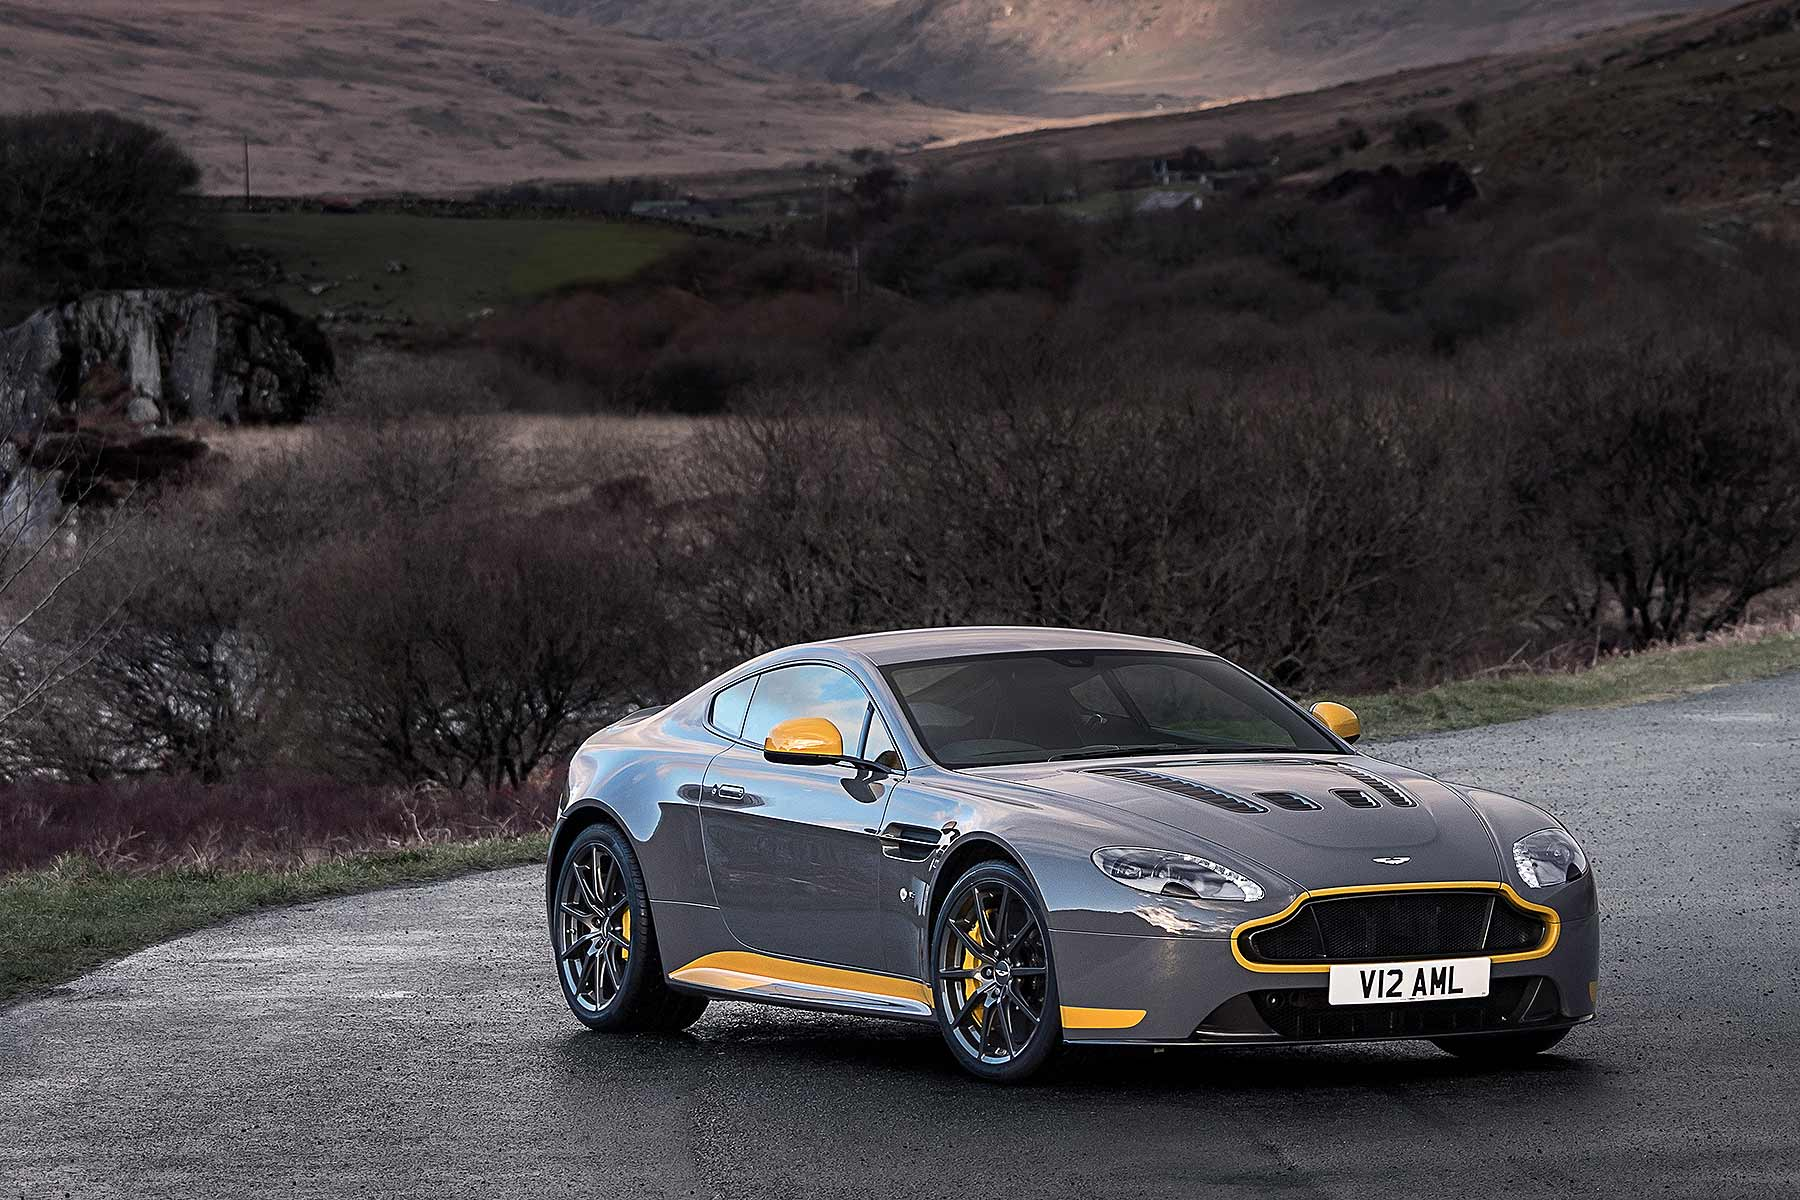 2016 Aston Martin V12 Vantage S 7-speed manual